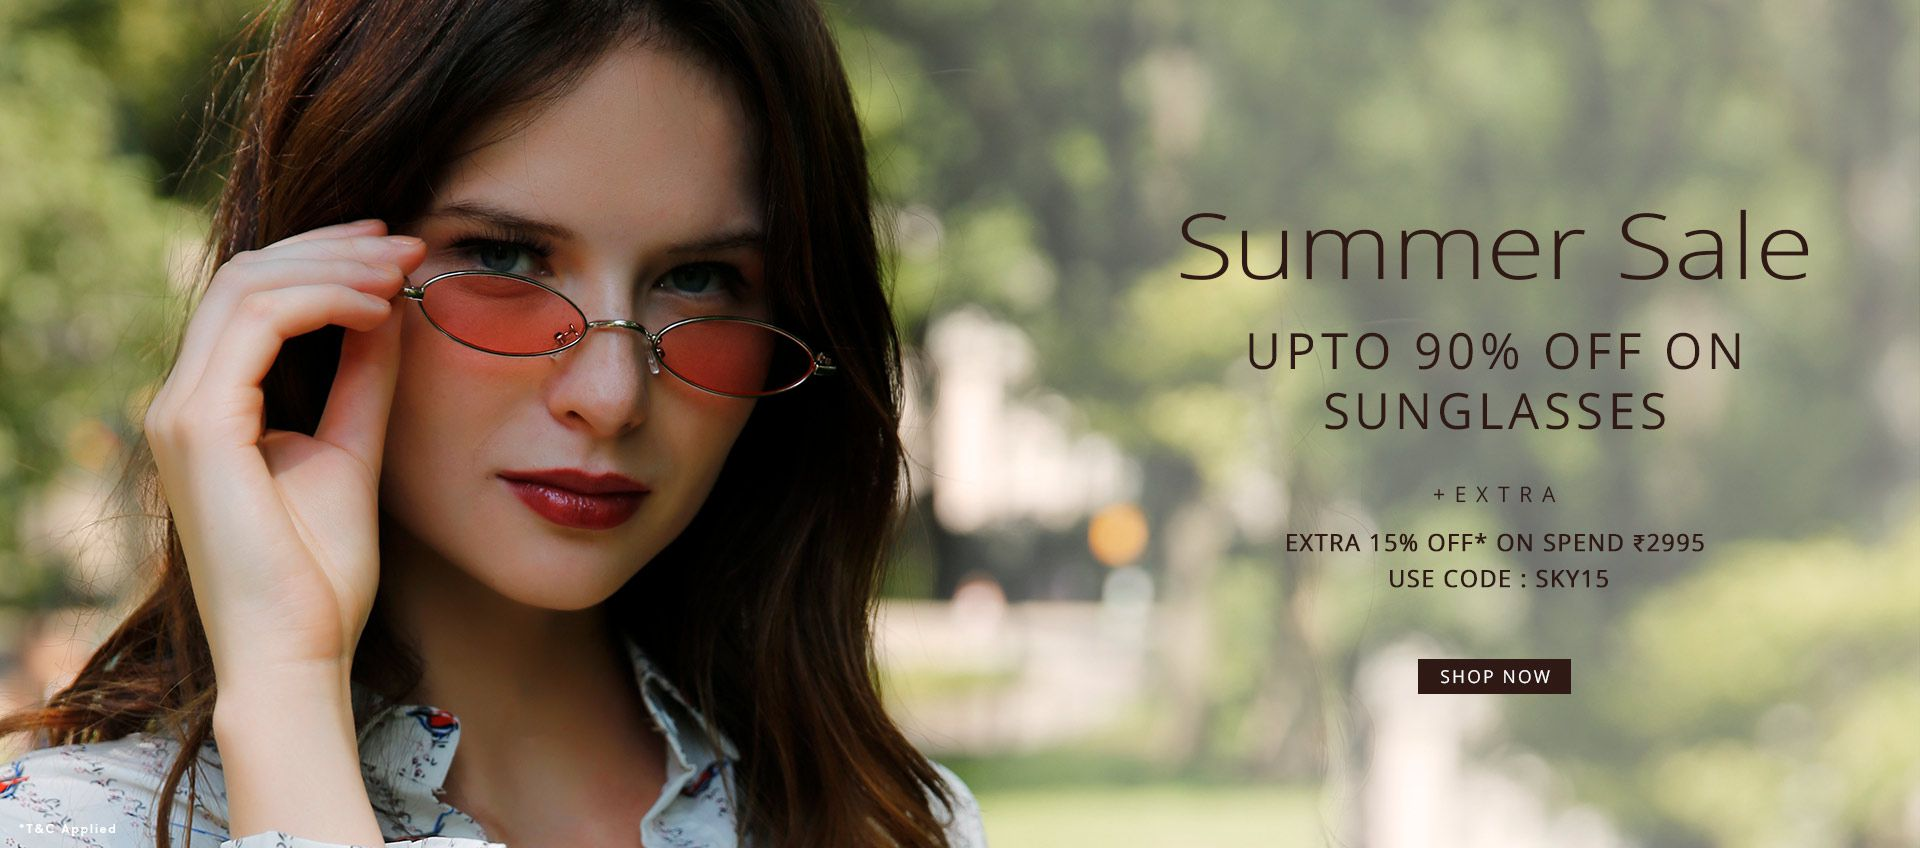 SUMMER SALE UPTO 90% OFF ON ACCESSORIES